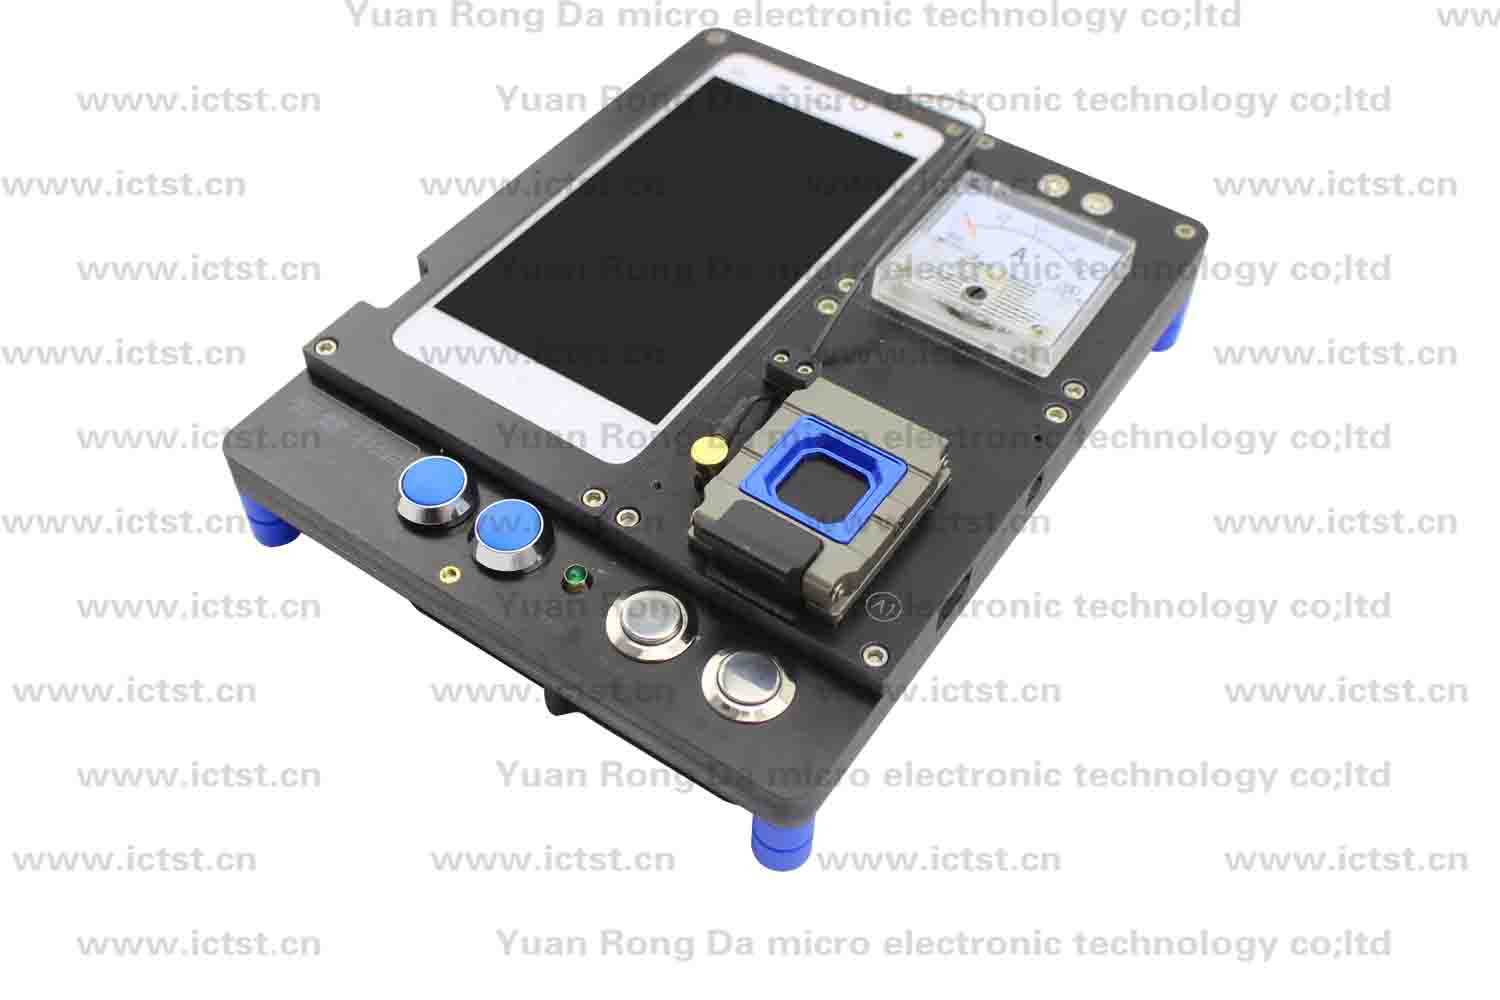 WTR6251 test socket medium frequency testing1